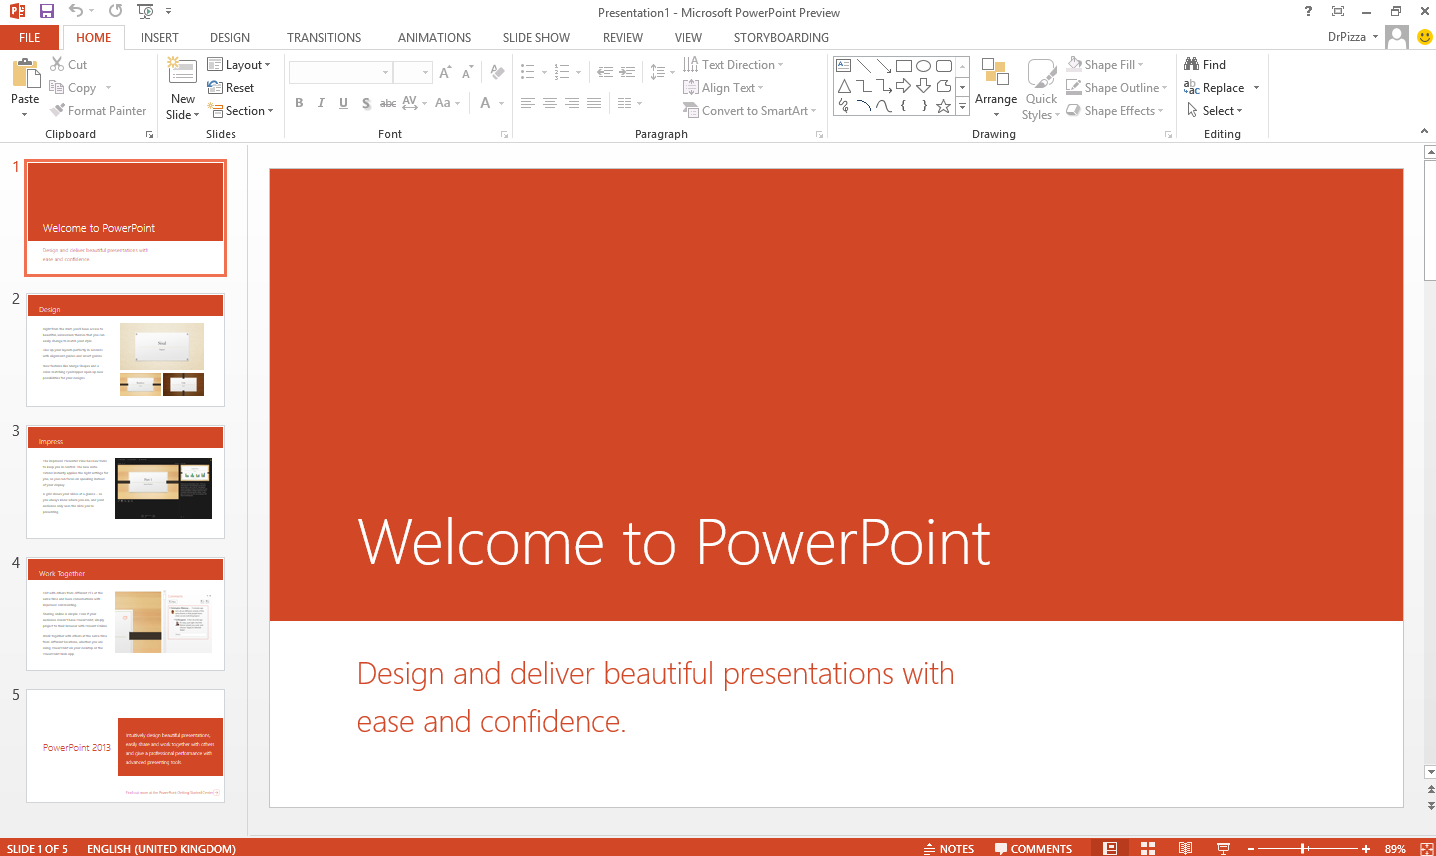 Tips for an Awesome Powerpoint Presentation - SlideShare